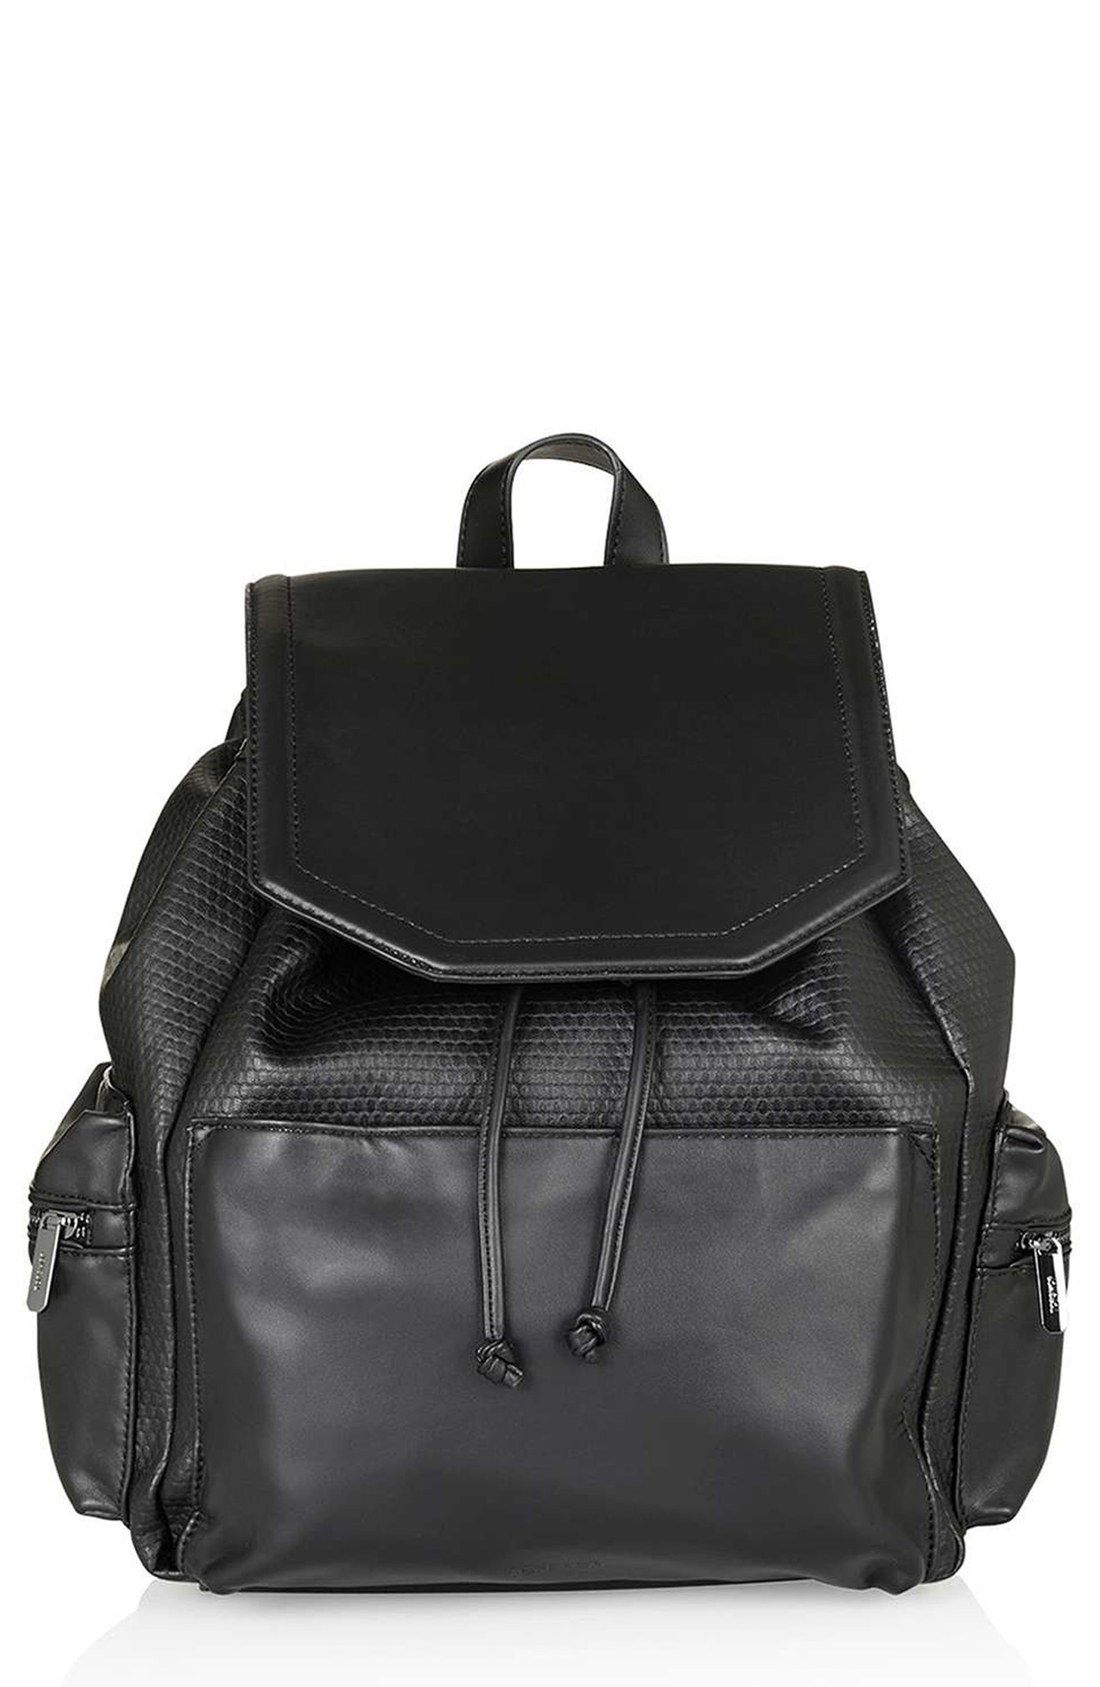 Image result for leather backpack | Leather Baggage | Pinterest ...